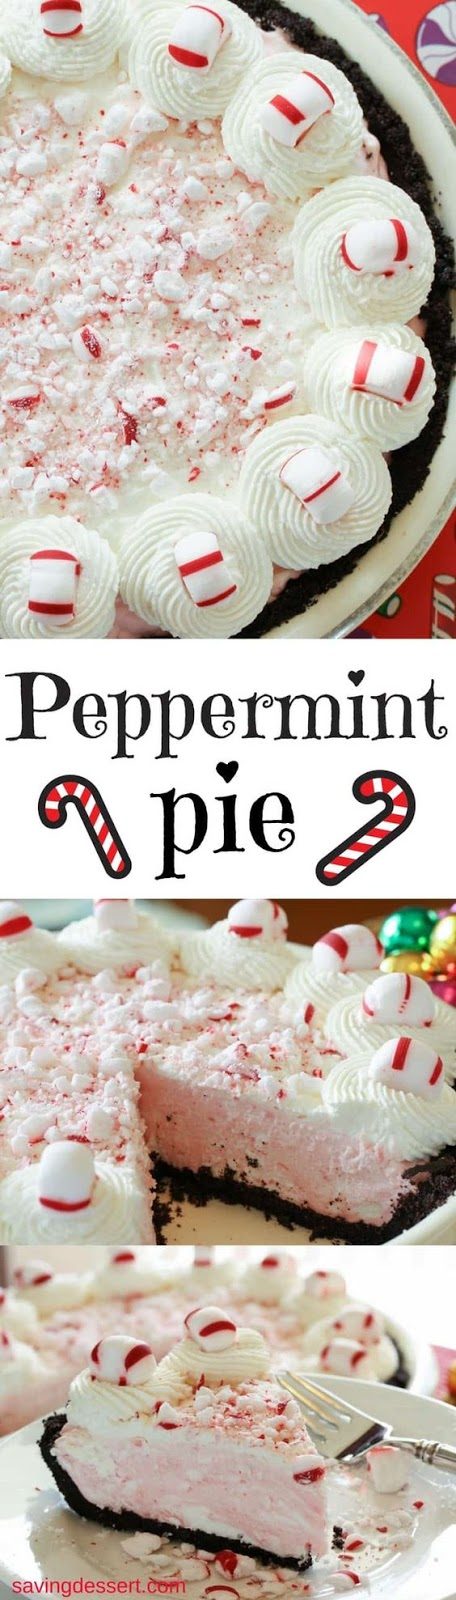 alongside all the flavors of the vacation flavor Peppermint Pie